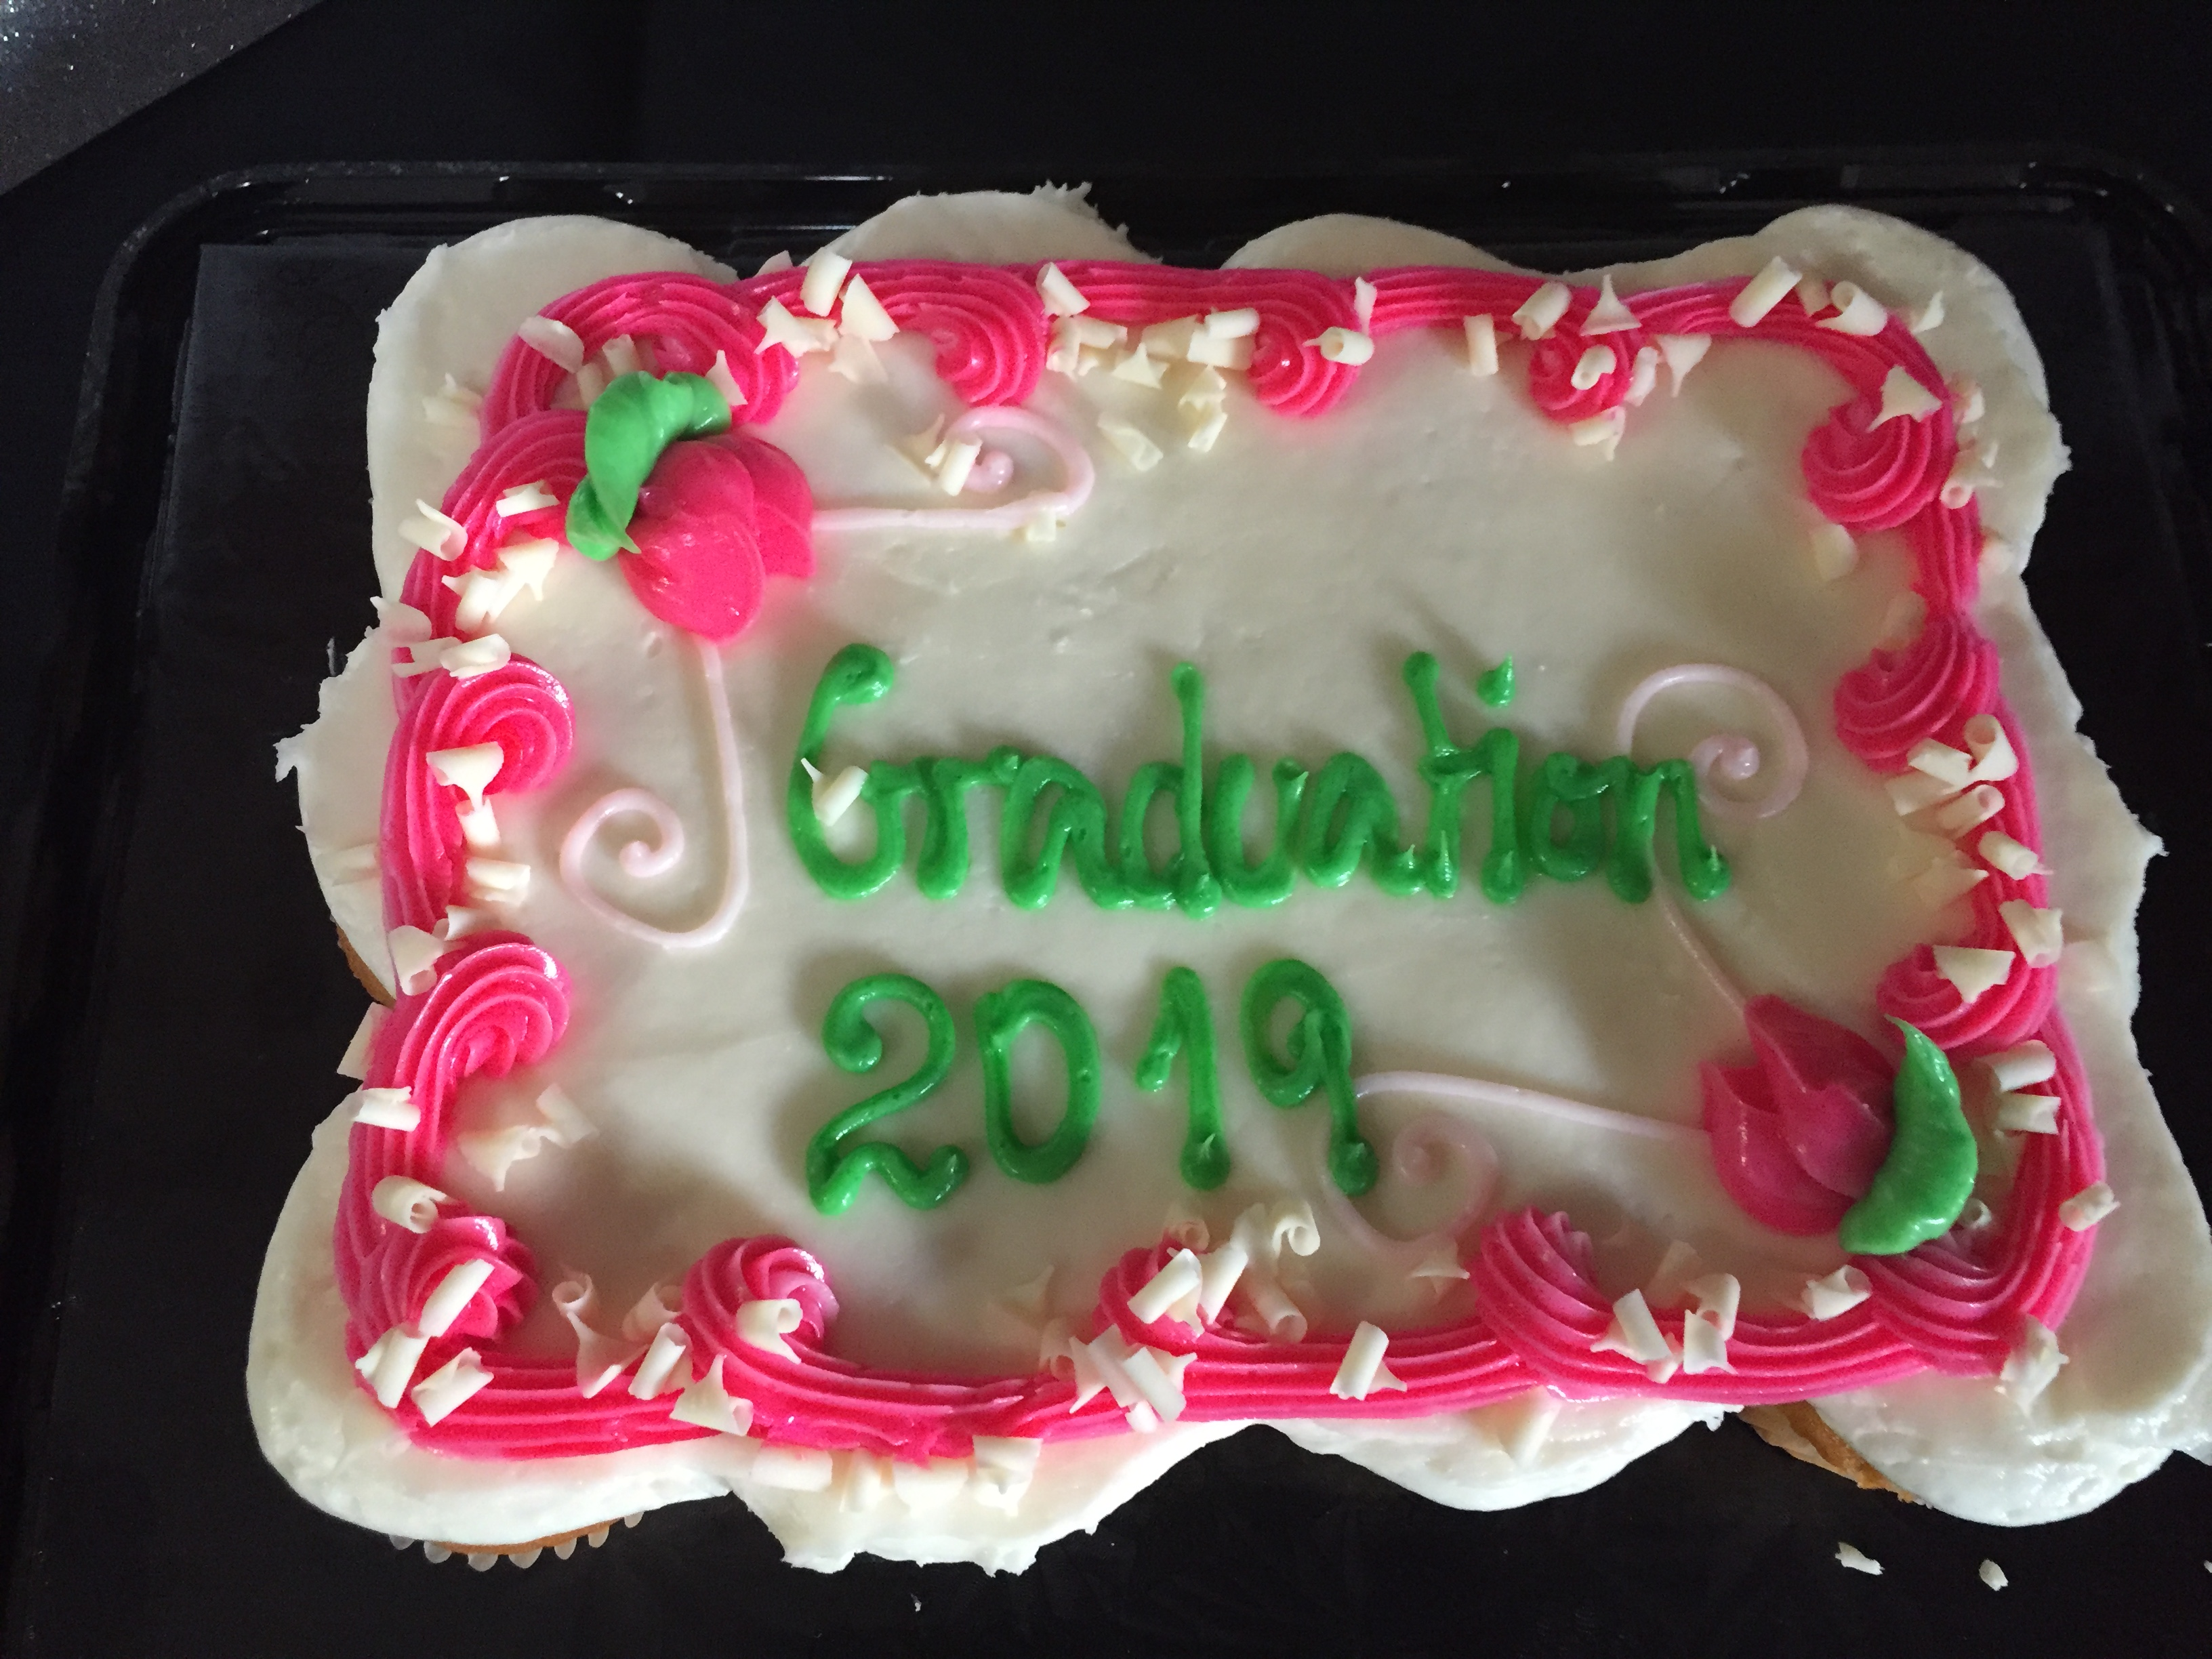 cake that says graduation 2019 on it